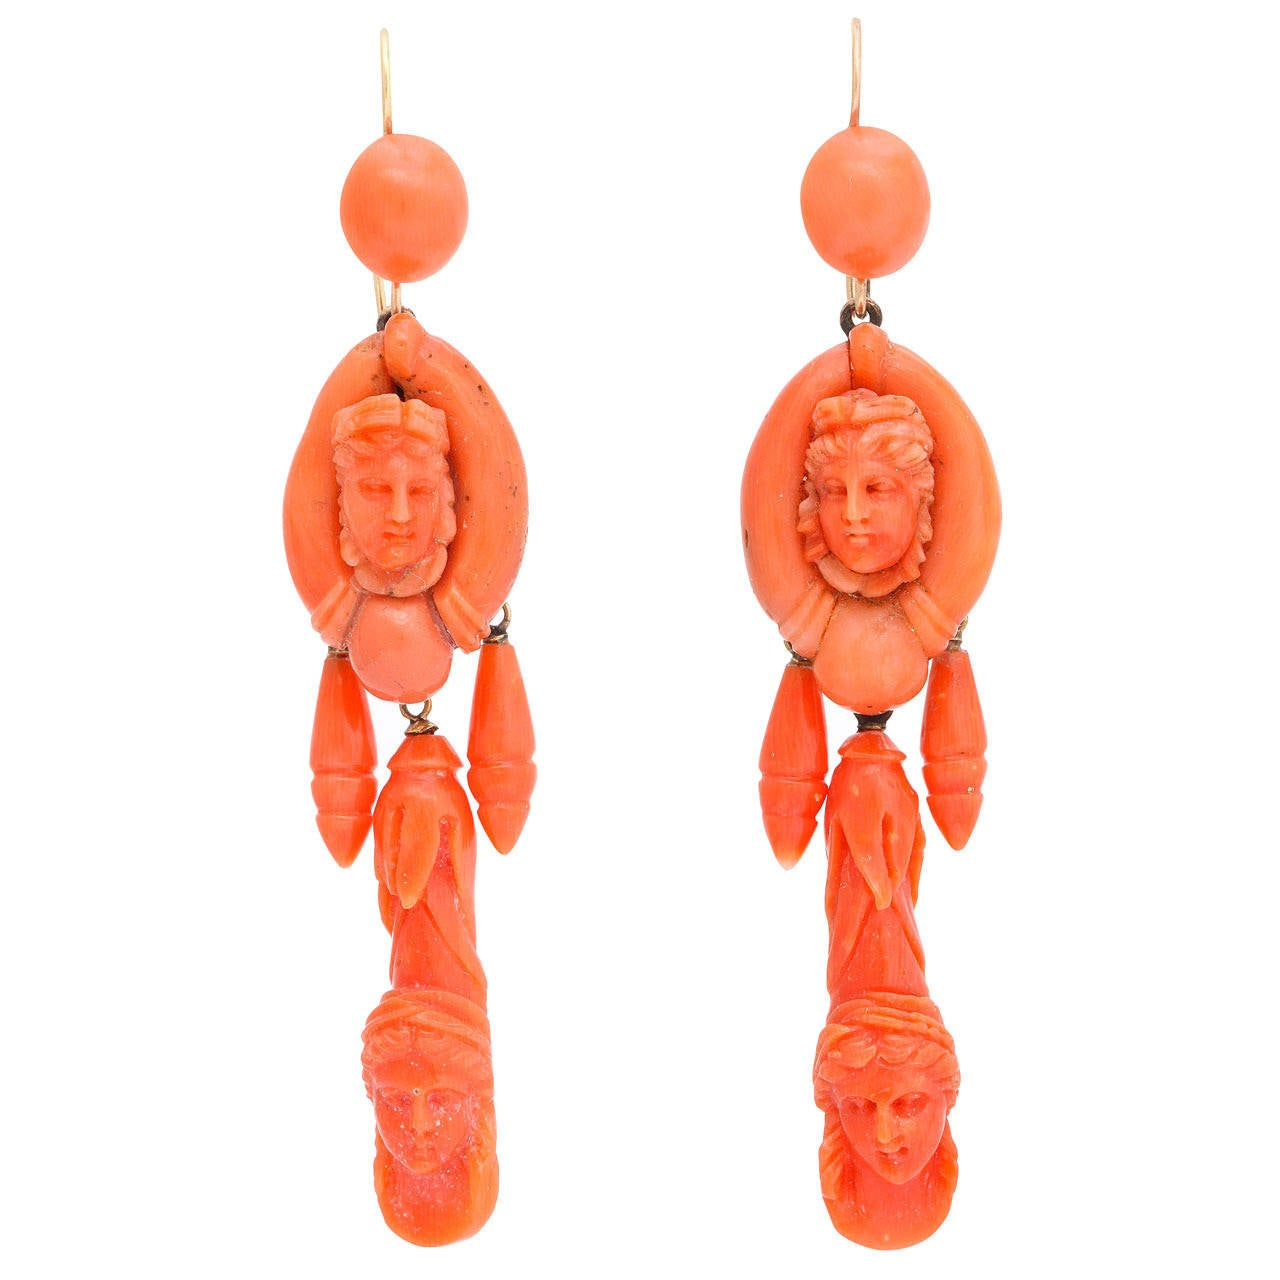 Victorian Carved Classical Neapolitan Coral Earrings 1